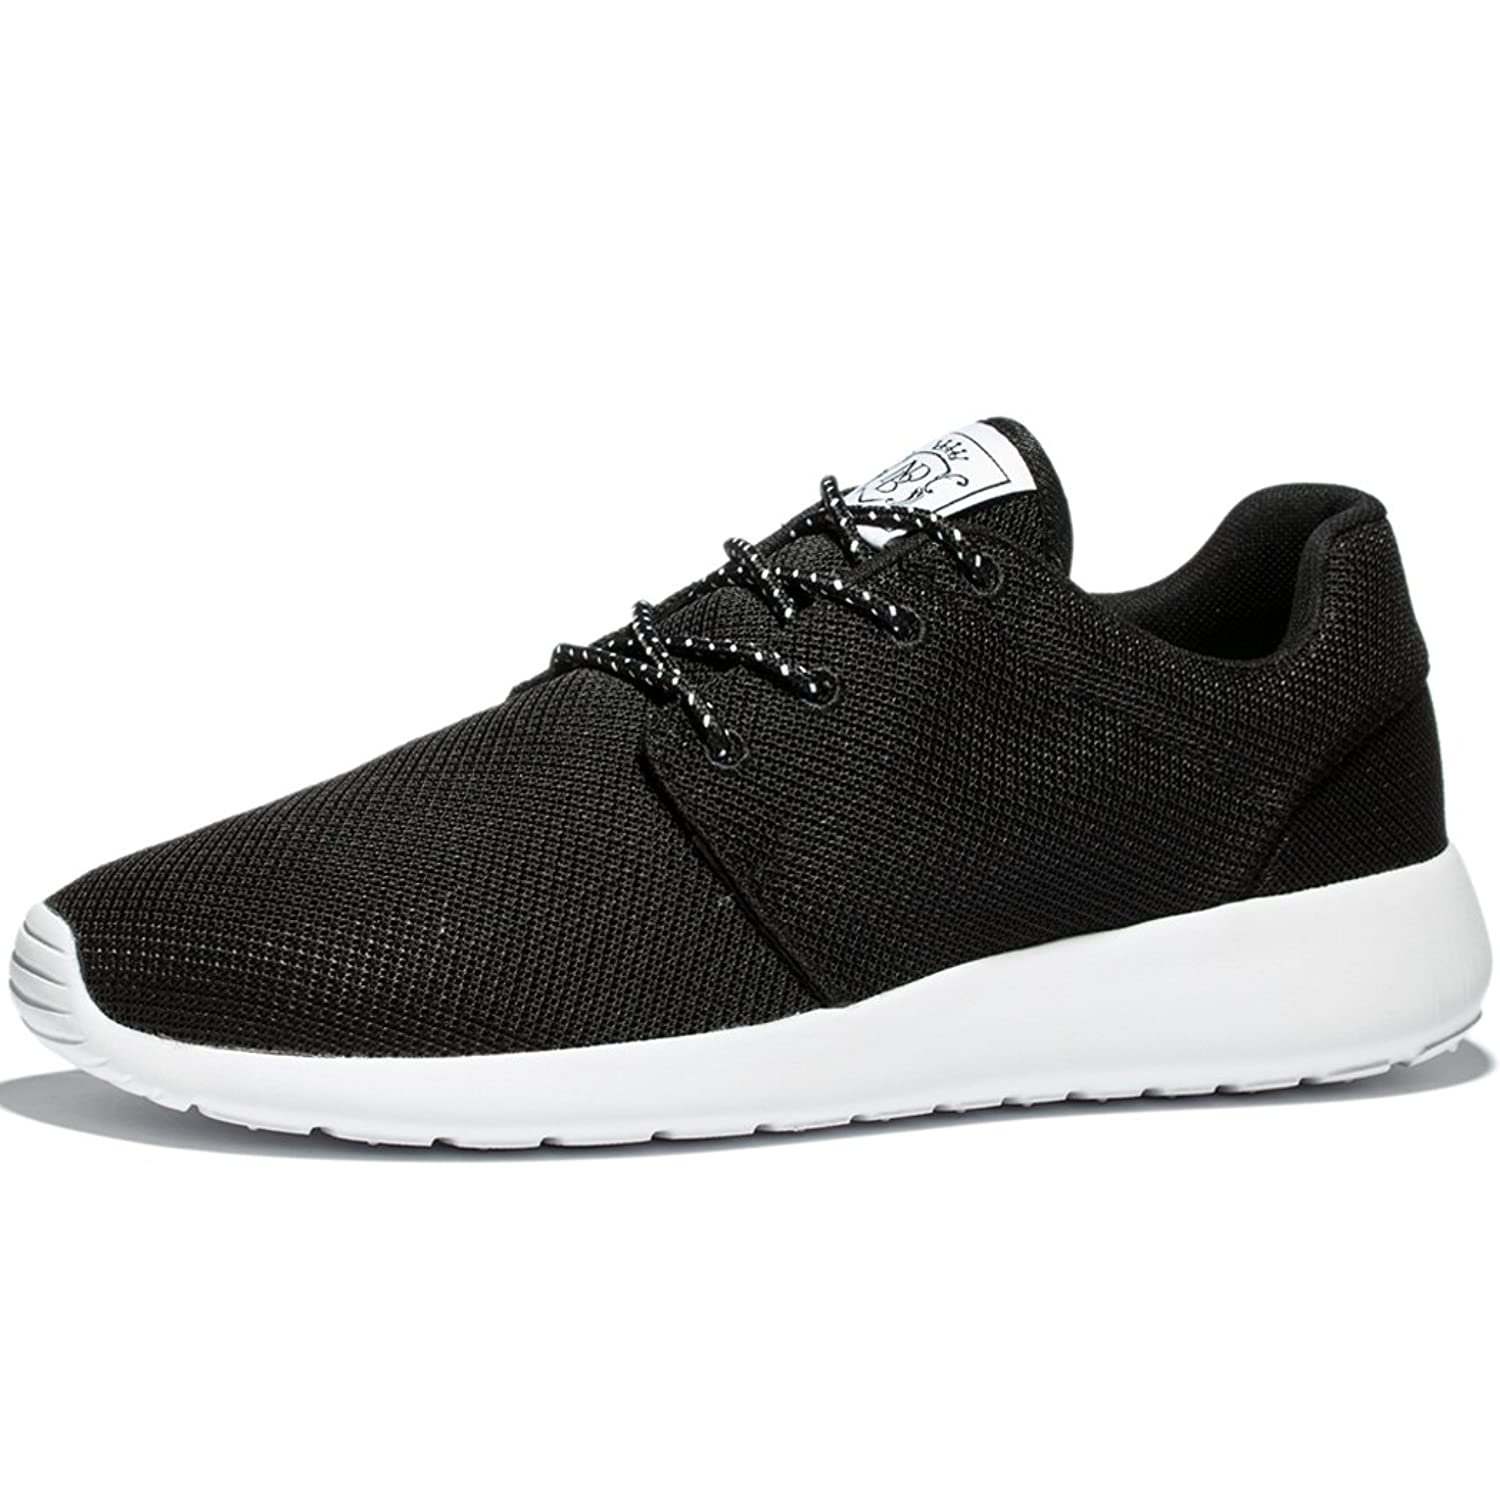 and sneakers for woman comforter man s men running products comfortable sports cherryas shoes breathing